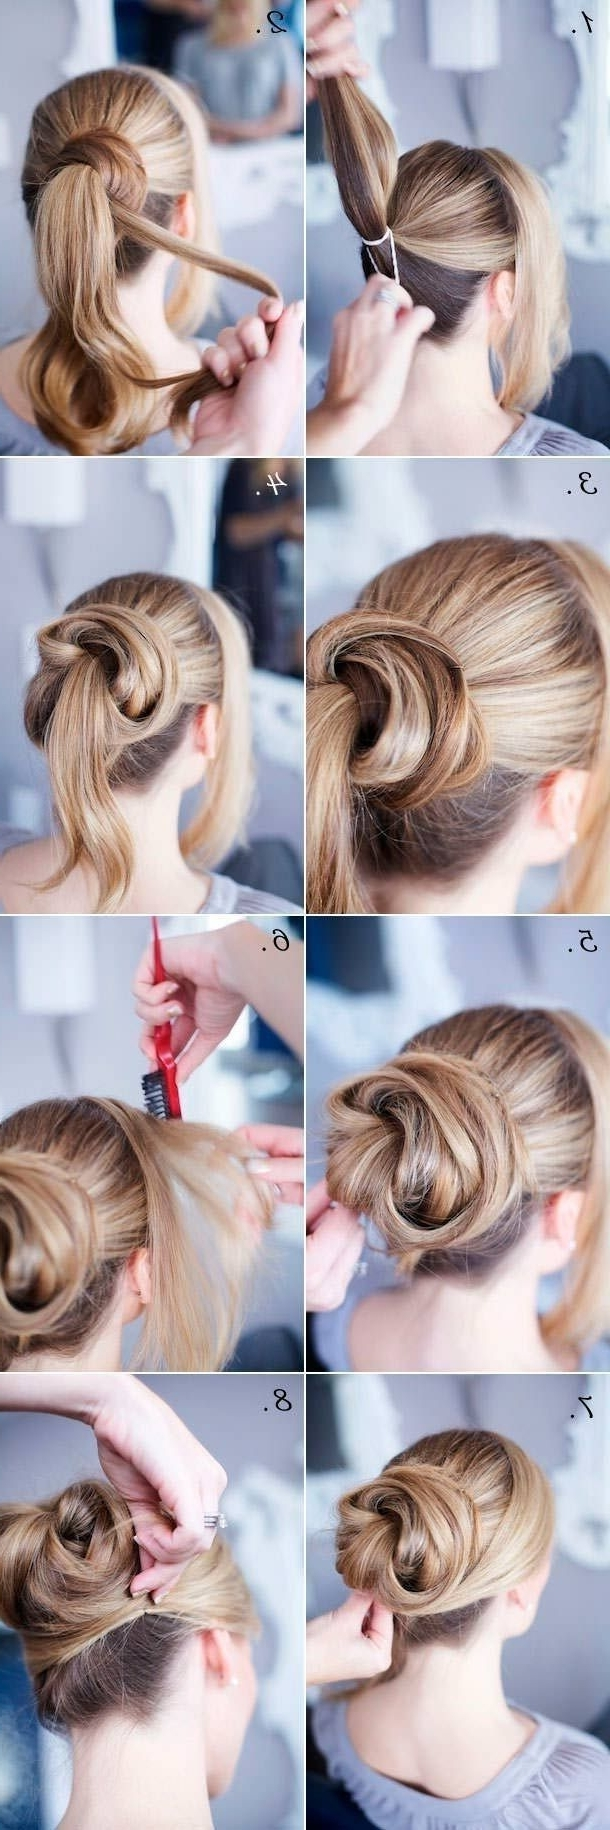 1282 Best Hair Styles Images On Pinterest | Make Up Looks, Wigs And Inside Easy Low Bun Updo Hairstyles (View 4 of 15)